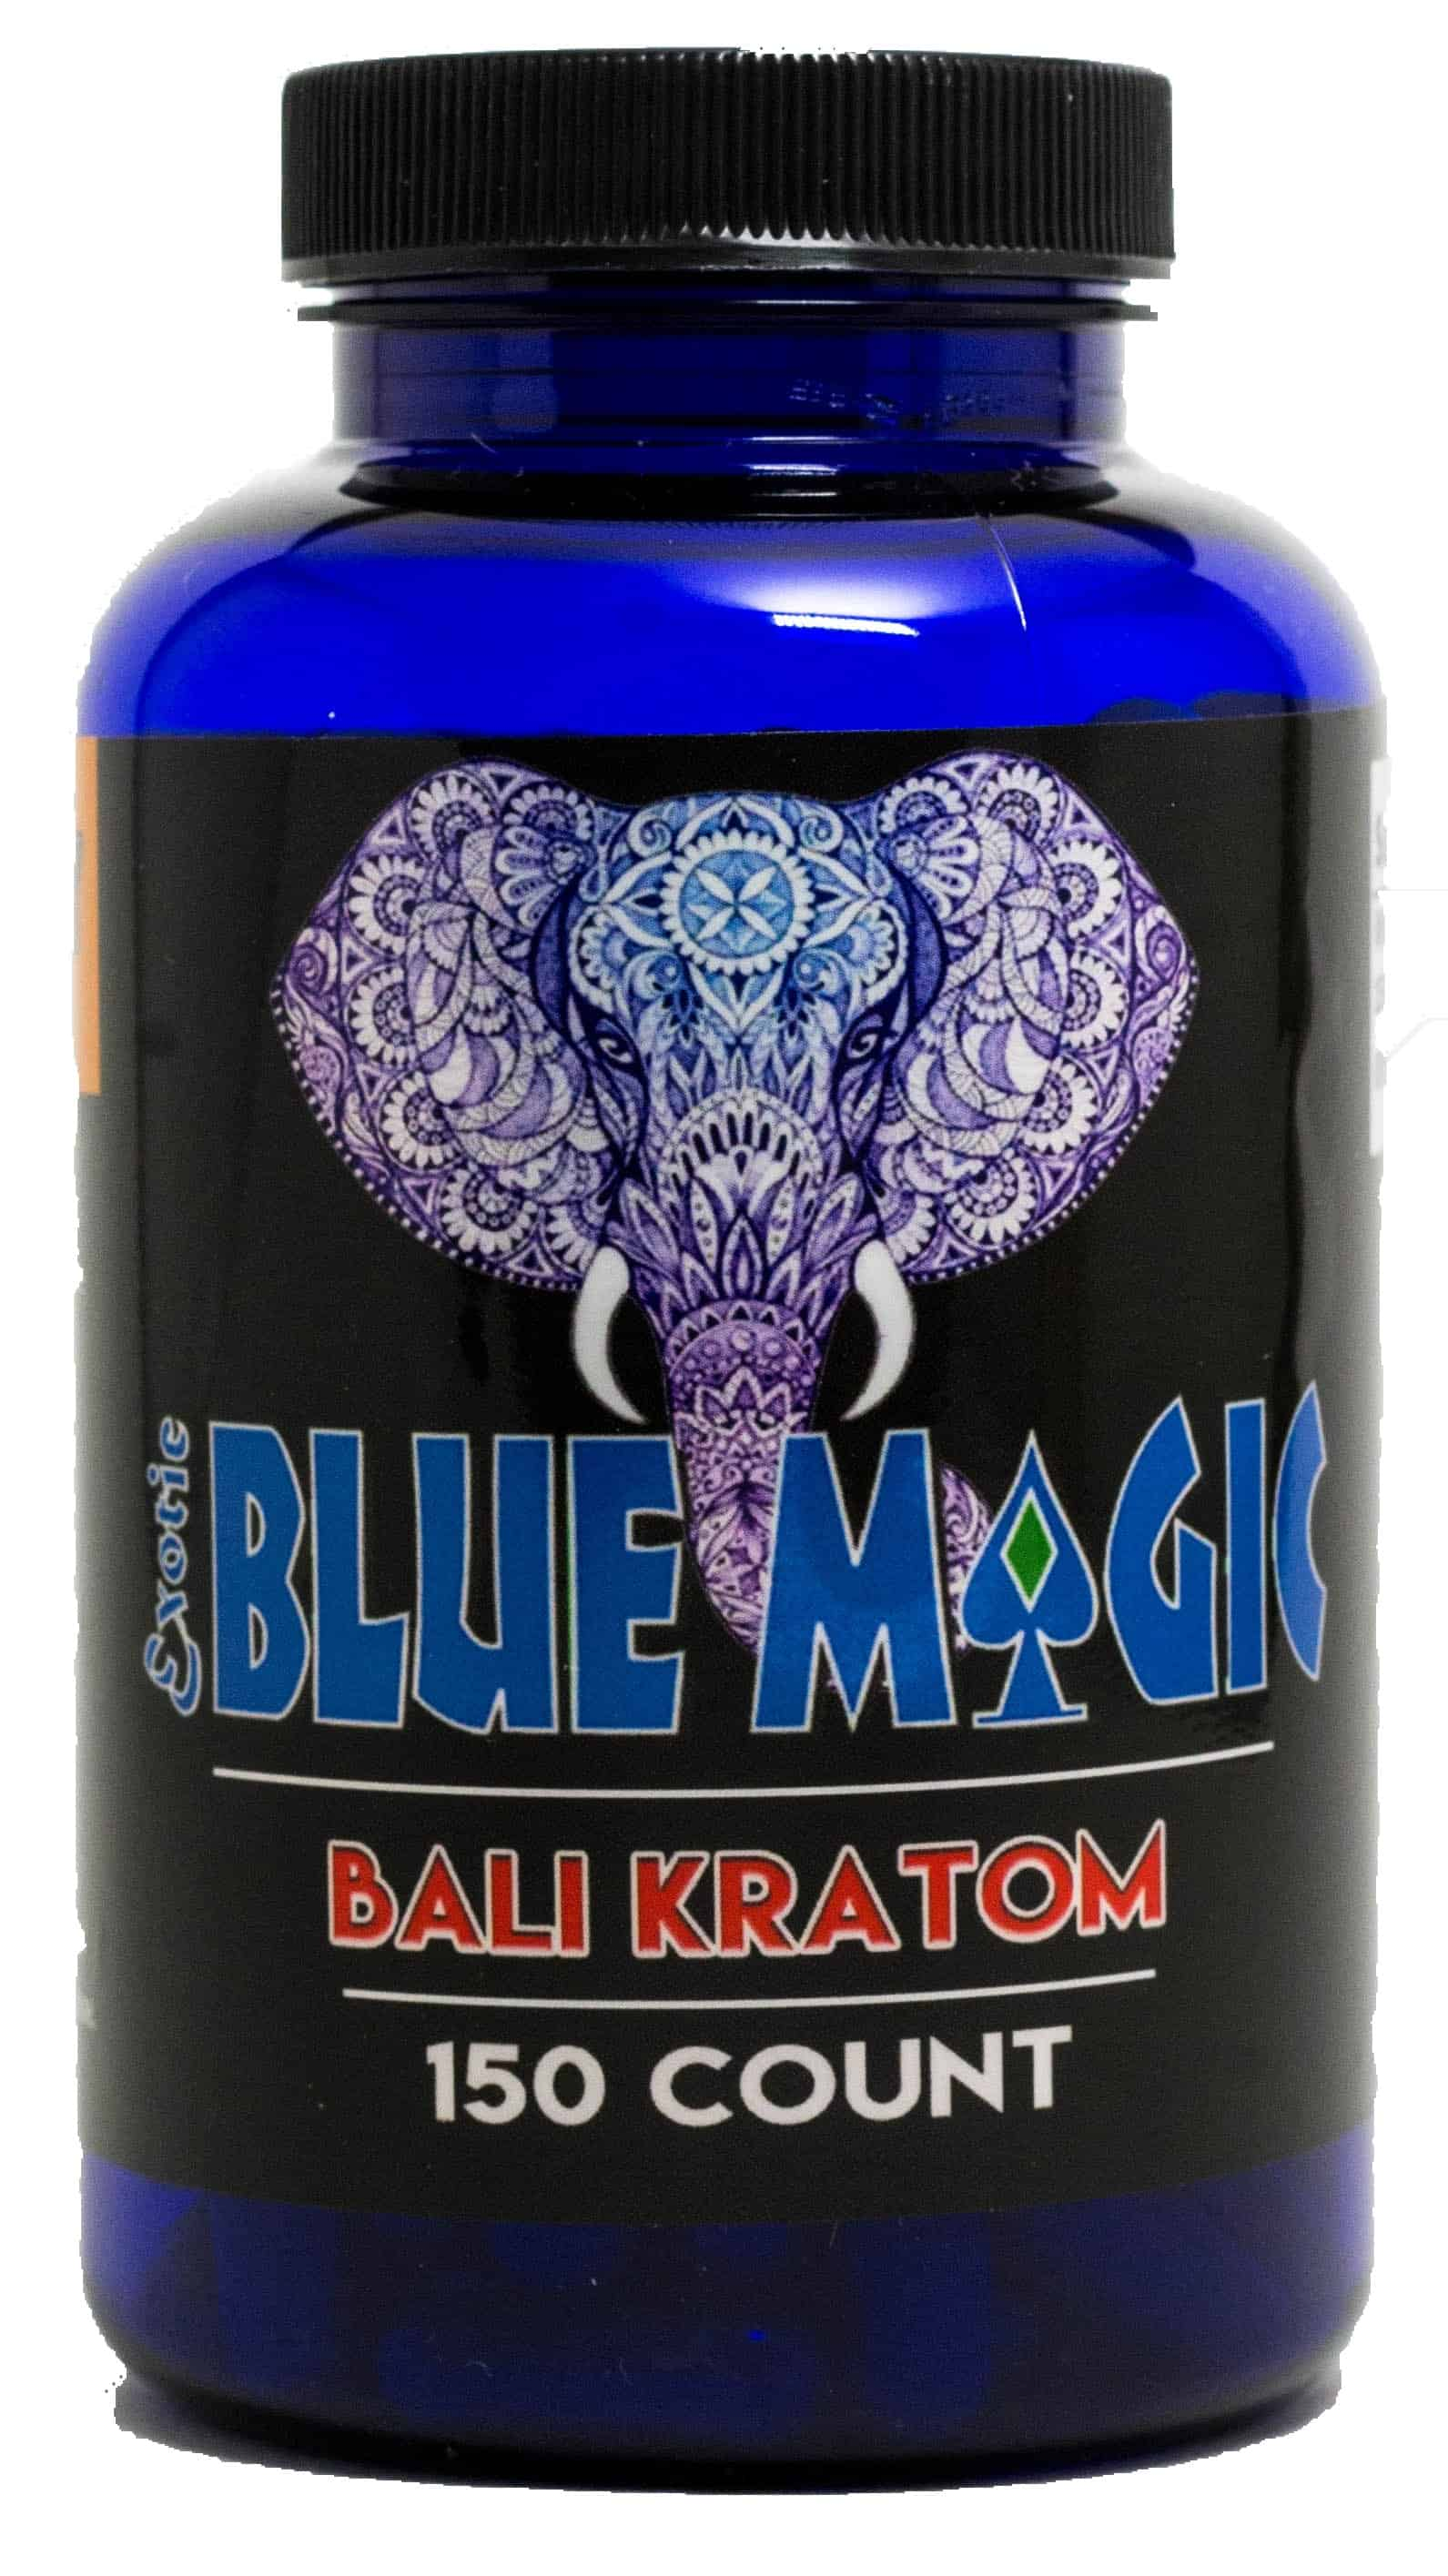 Blue Magic Kratom: A Mystical Brand for the Discerning User